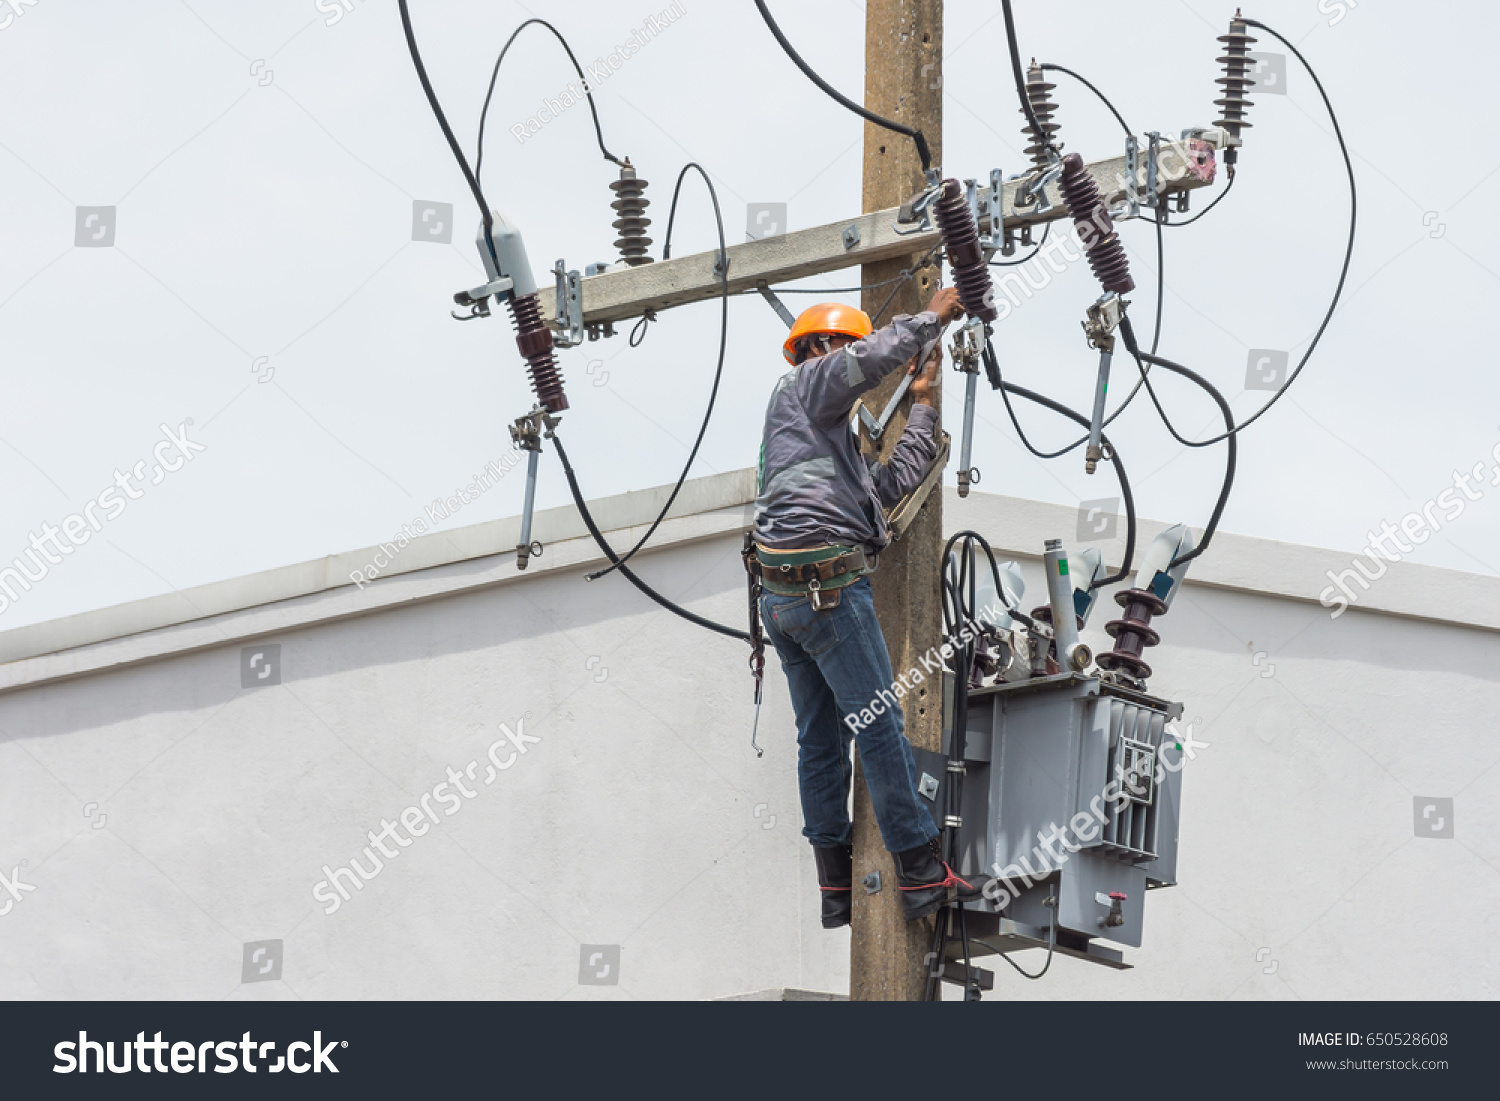 Electric Technician Hardhat Safety Uniform Checking Stock Photo Electrical And Wiring The With Repairing Fixing Wire Fuse Transformer On